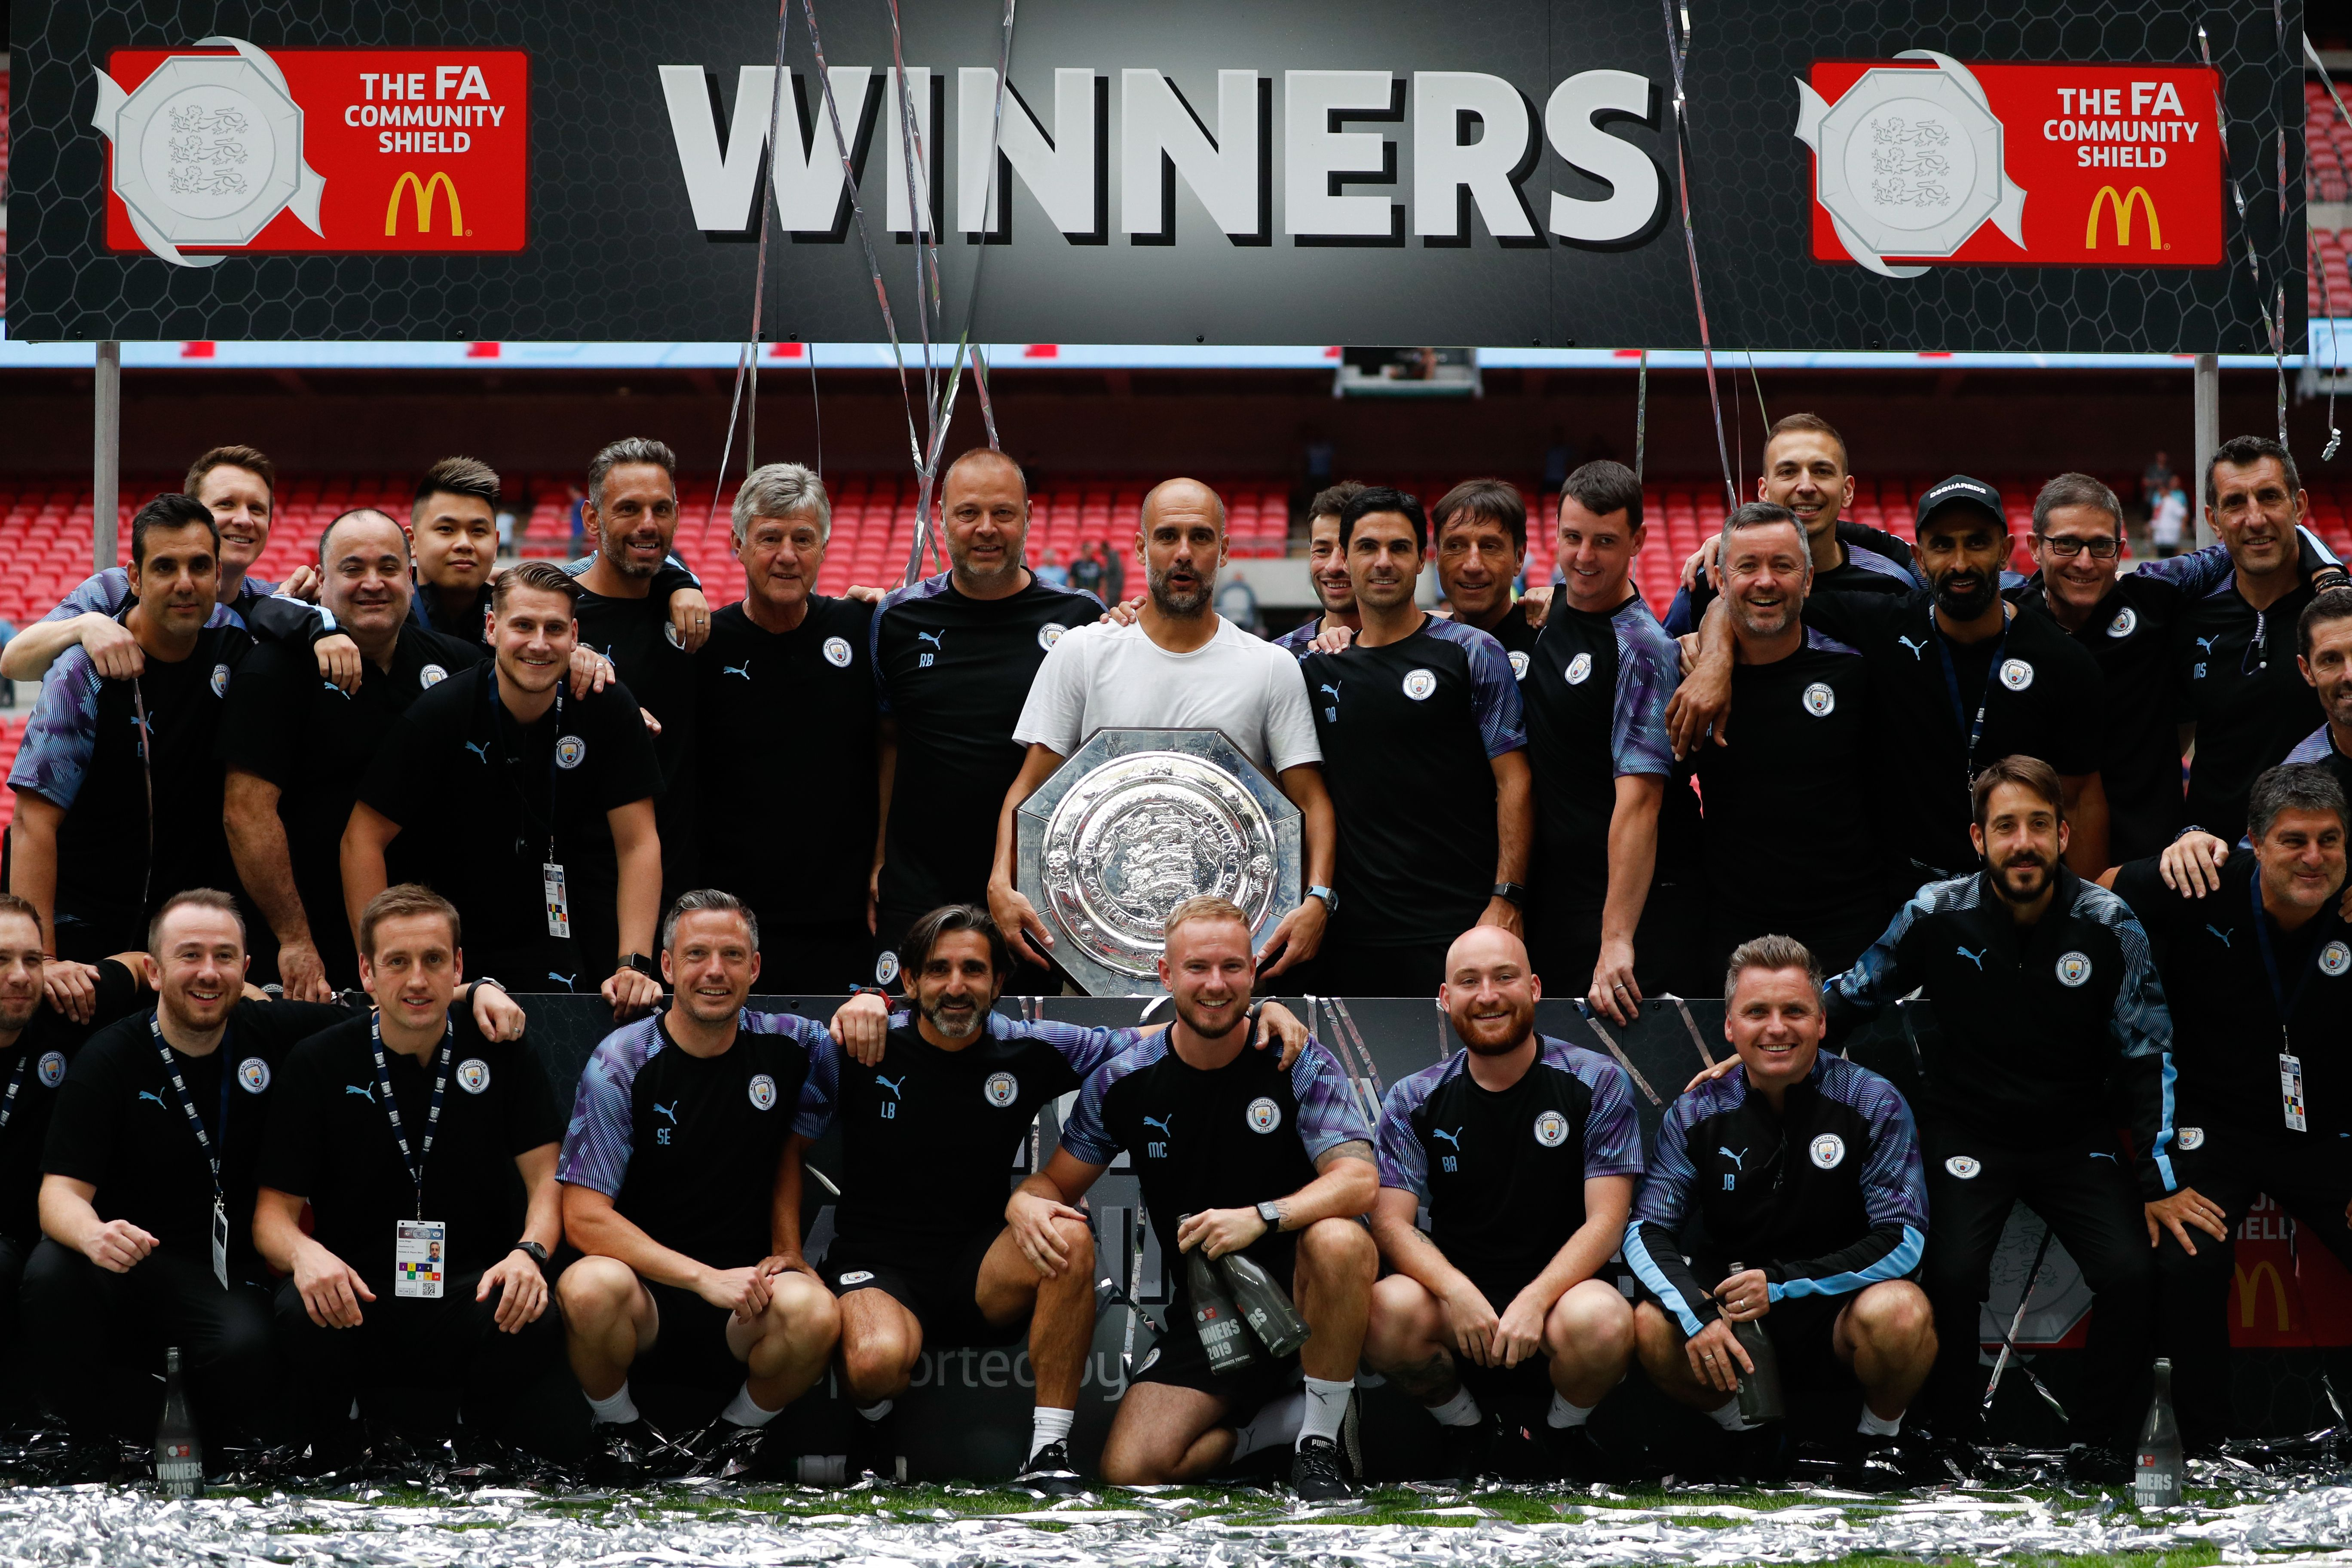 Winning is just part of the routine by now for Manchester City players under Pep Guardiola. (Picture Courtesy - AFP/Getty Images)